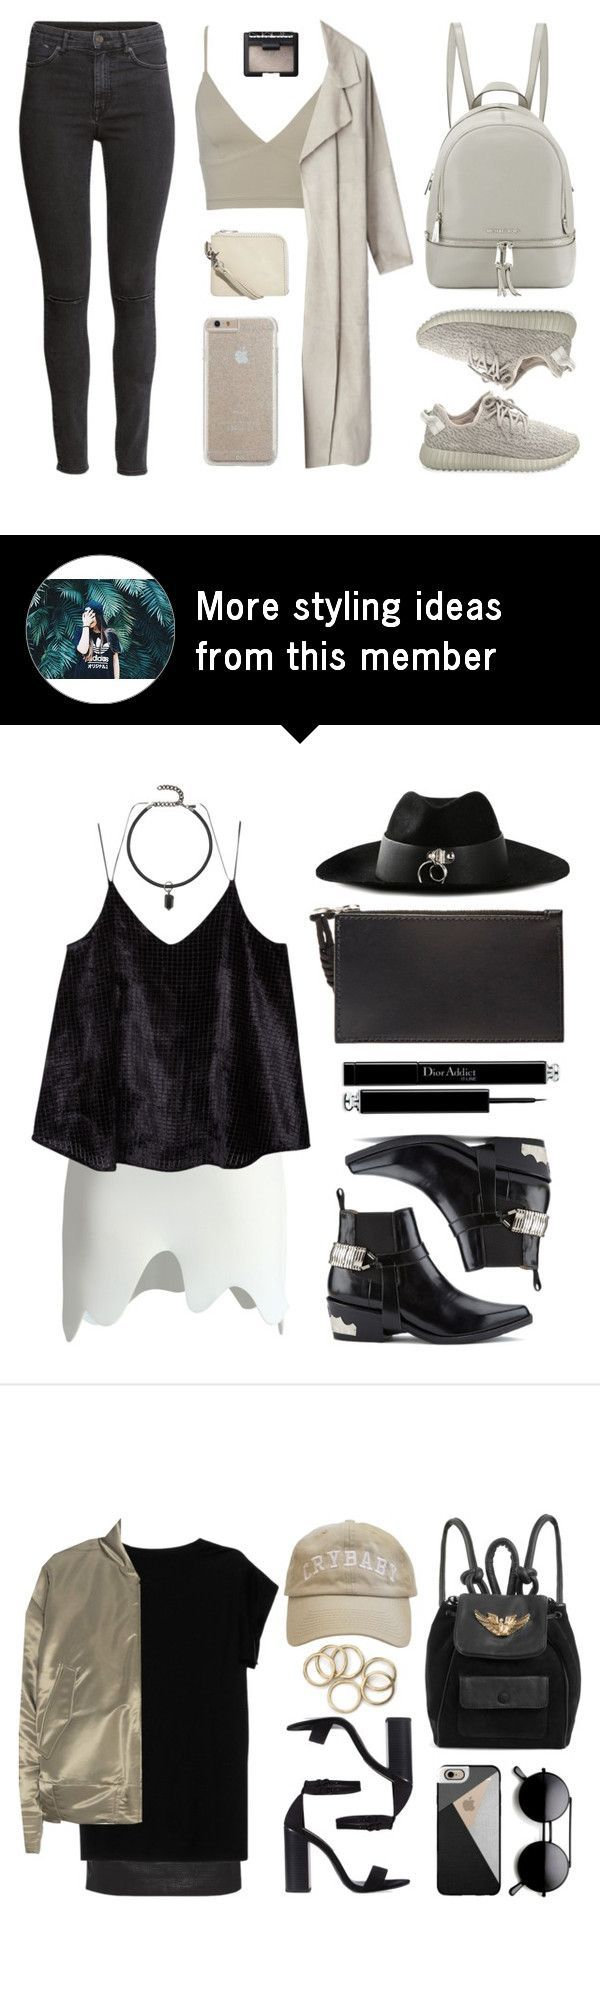 """Yeezy"" by baludna on Polyvore featuring adidas Originals, MICHAEL Michael Kors, H&M, Cheap Monday, Case-Mate and NARS Cosmetics"